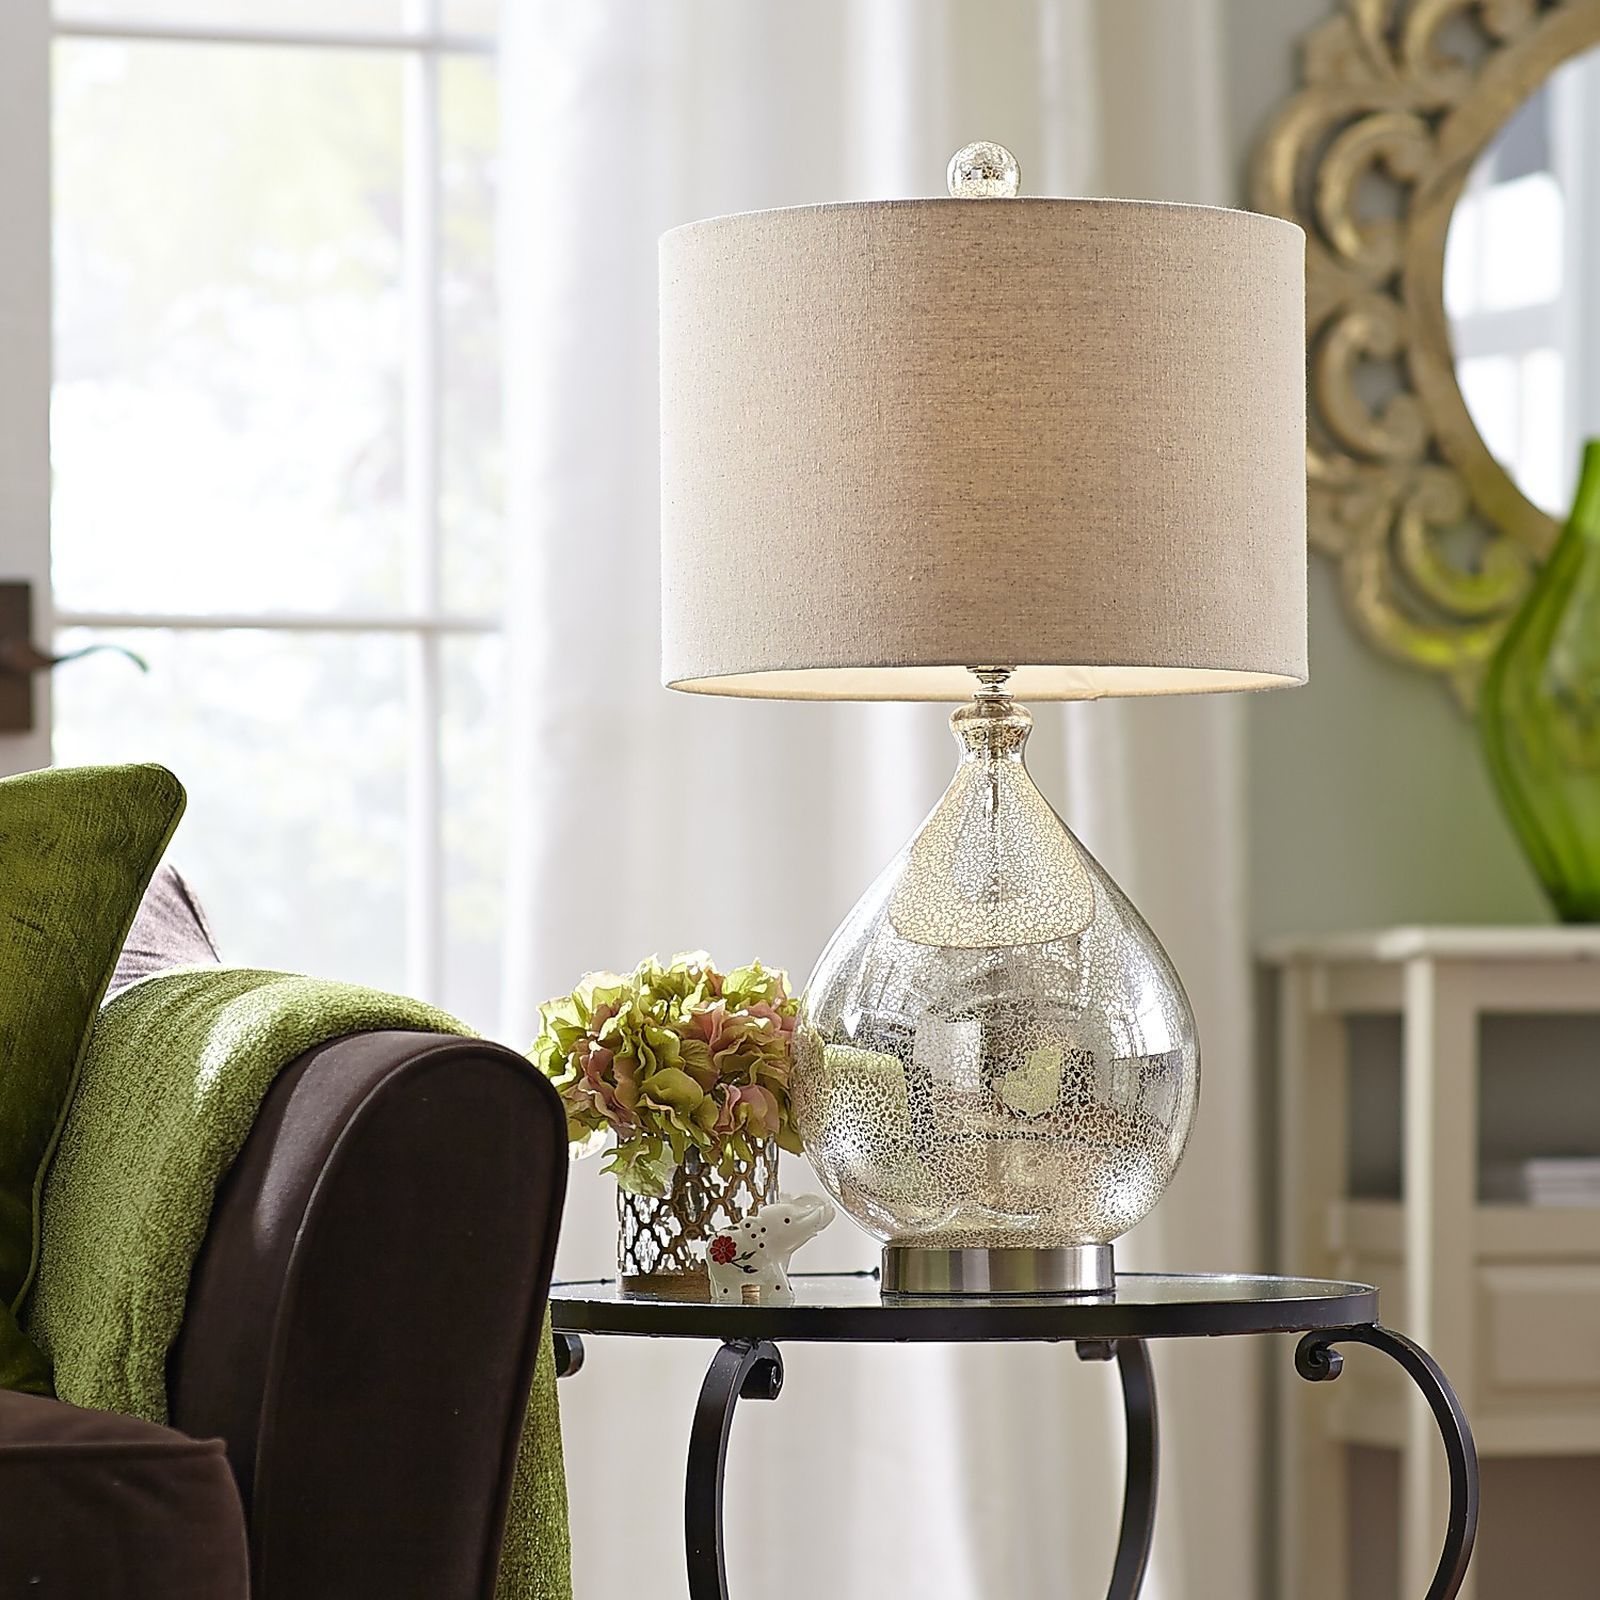 title | Contemporary Lamps For Living Room